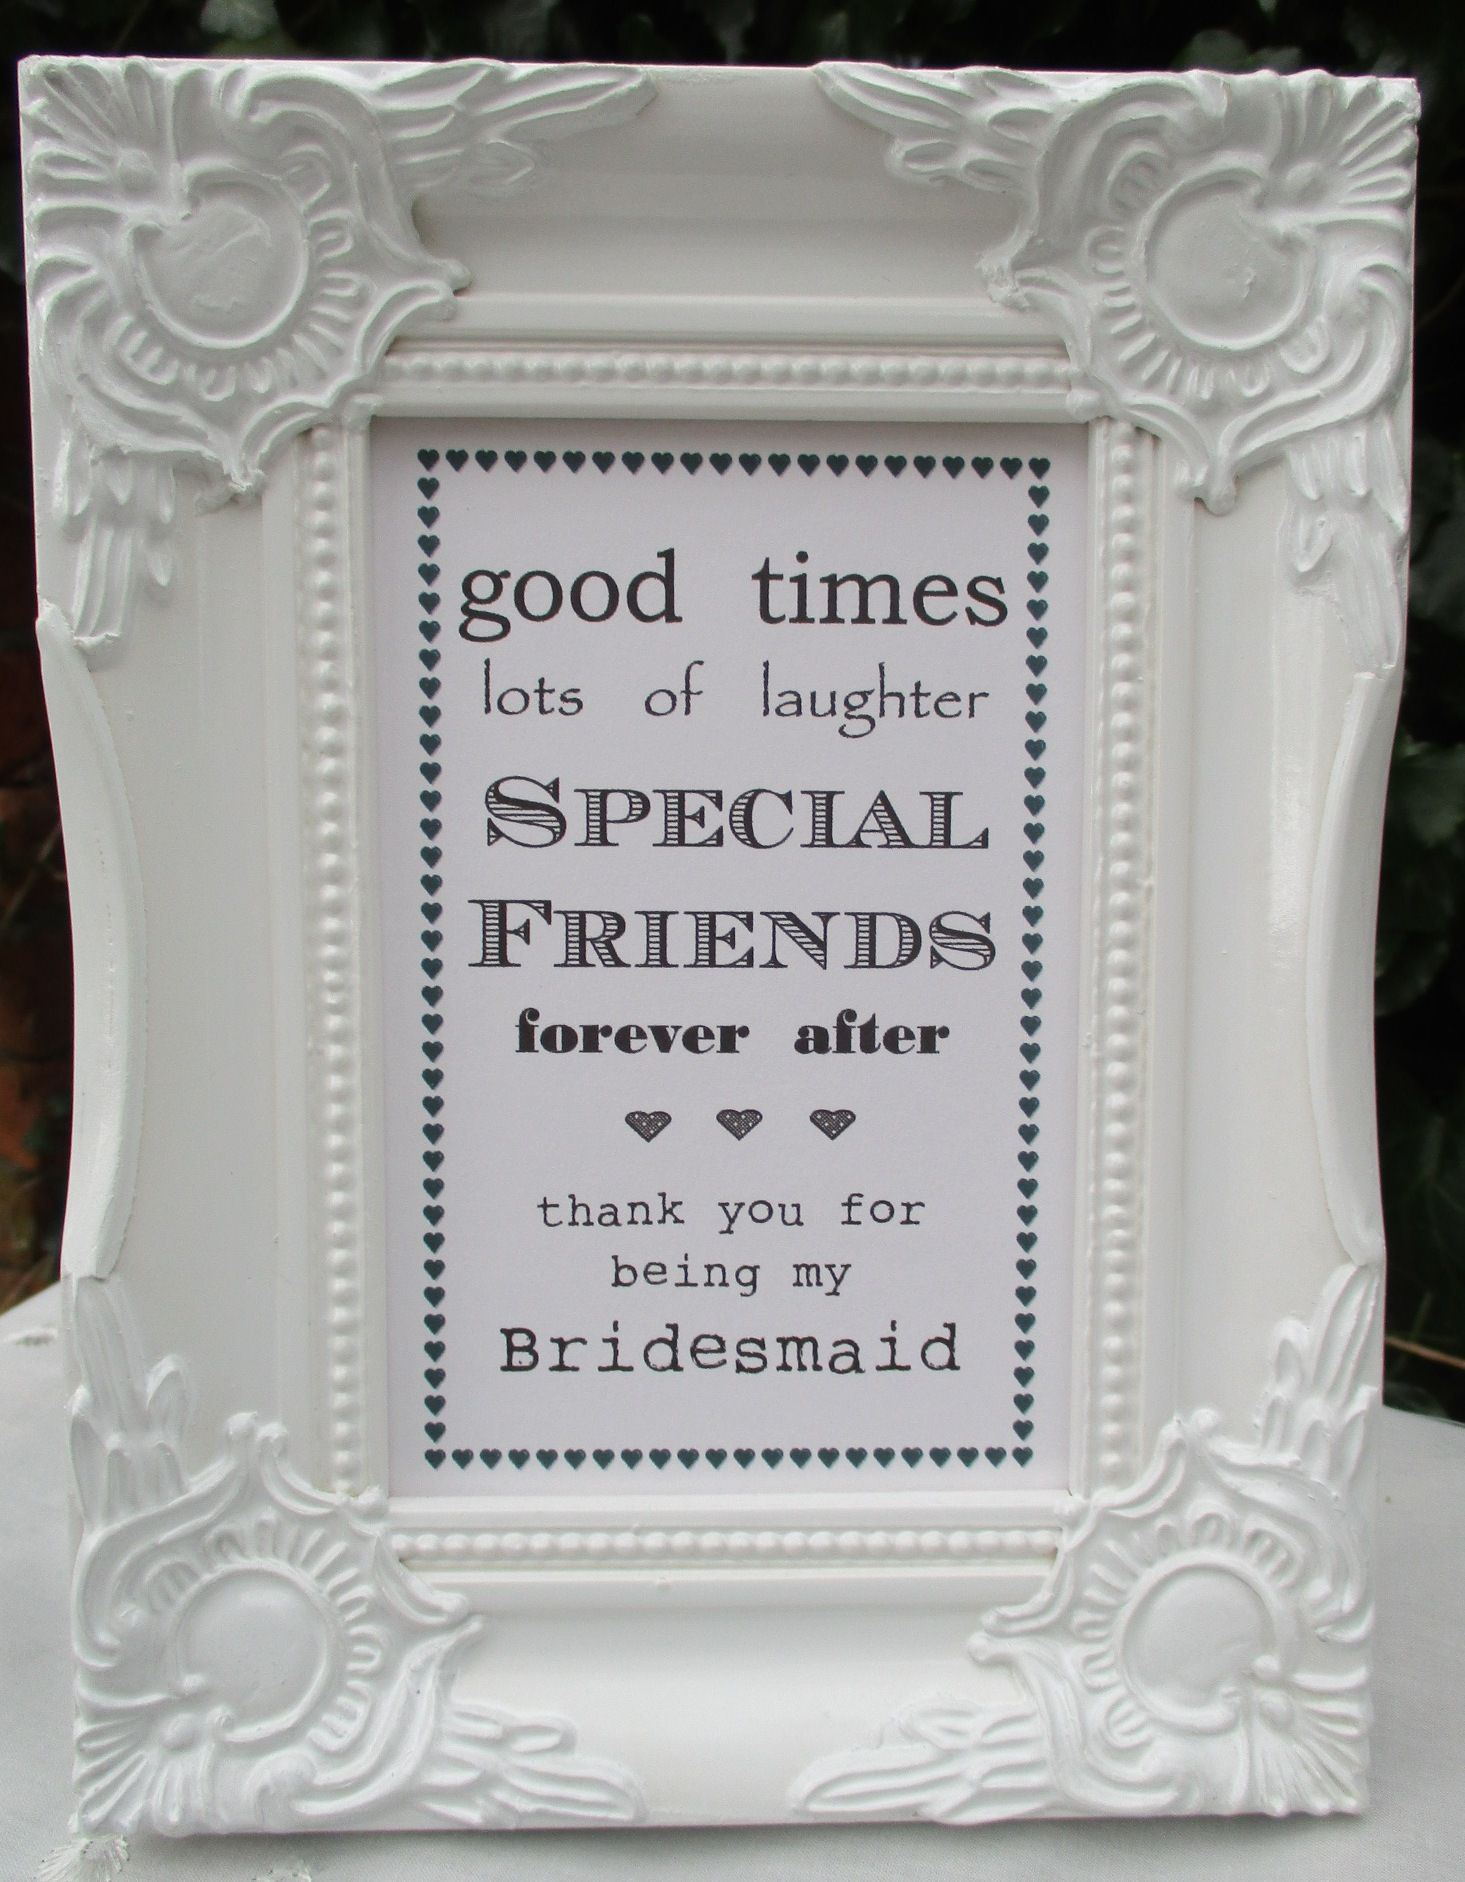 Thank You For Being My Bridesmaid Frame